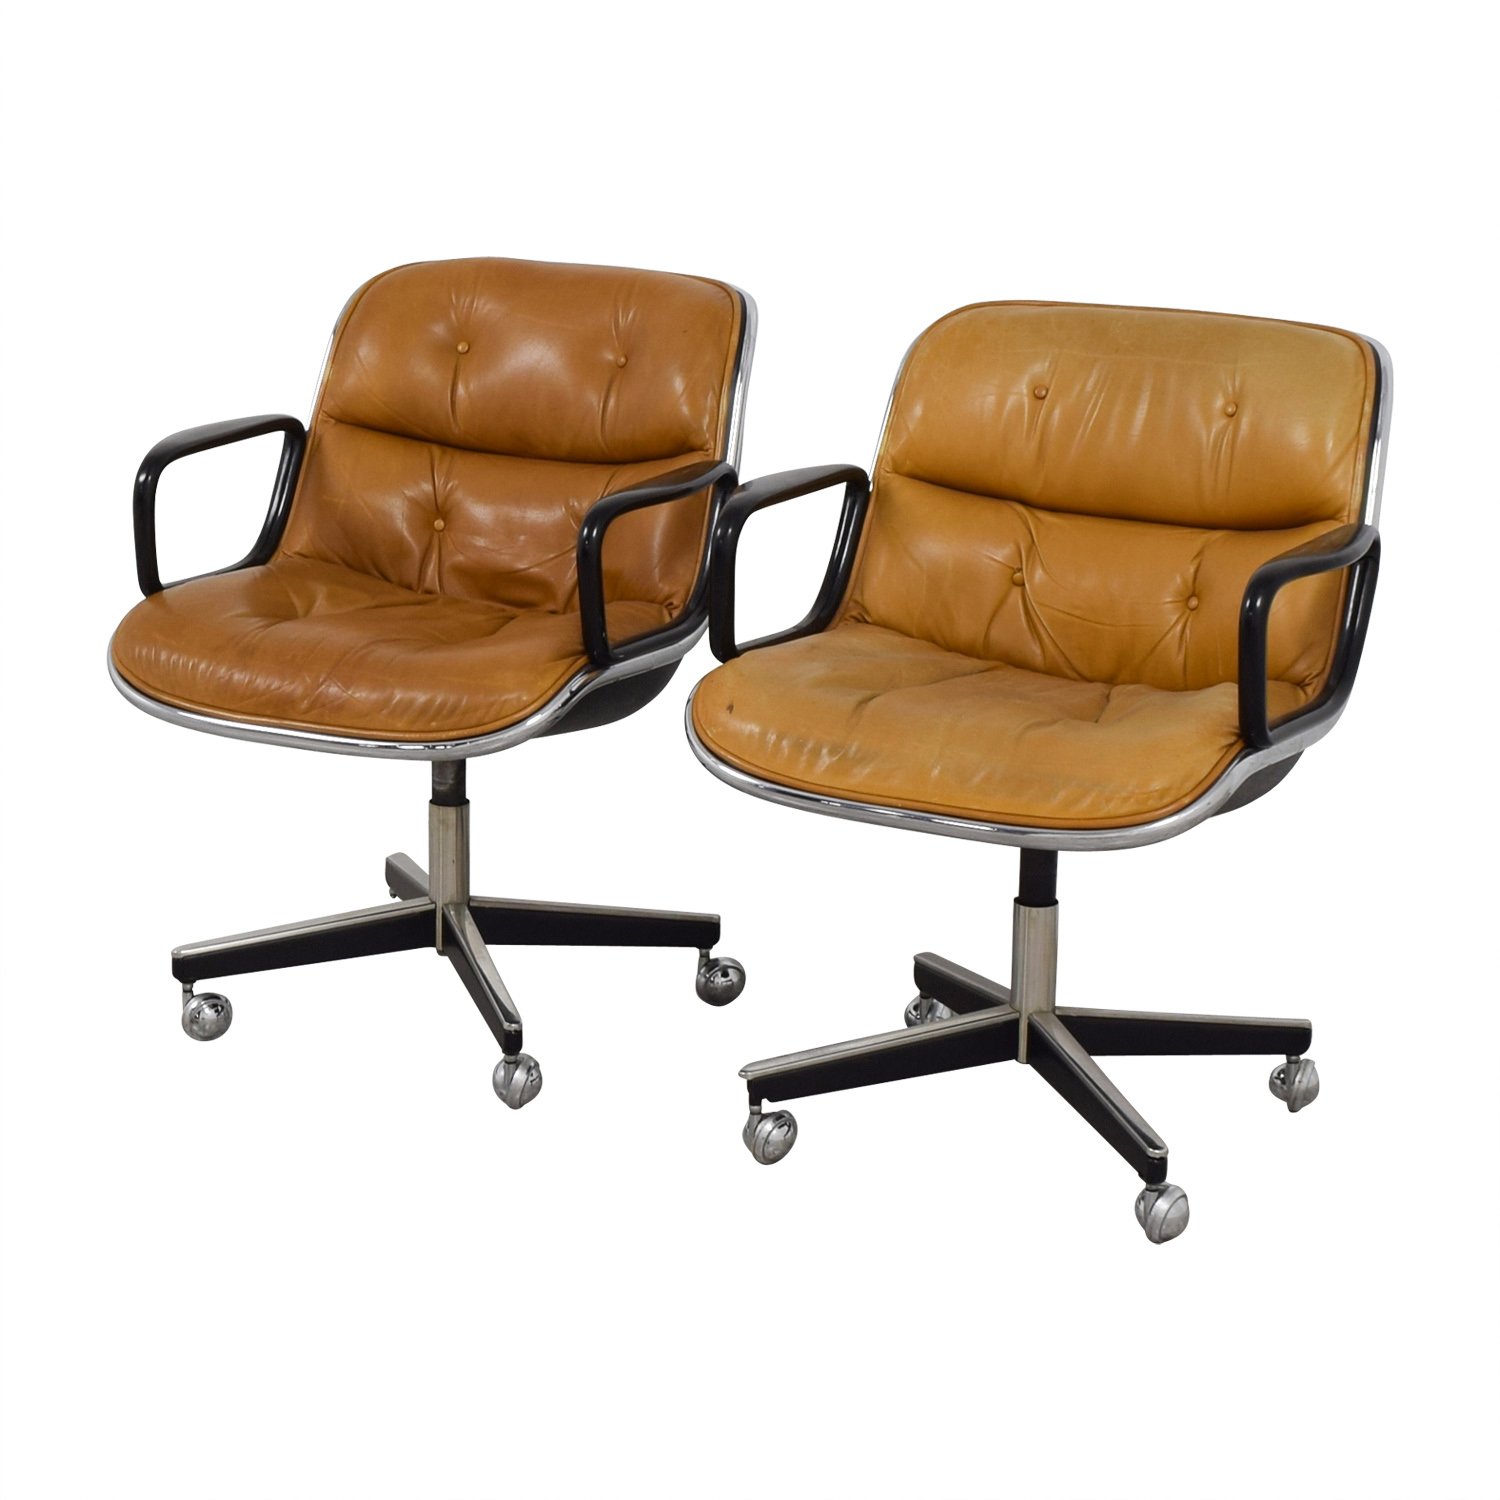 buy Knoll Knoll Pollock Cognac Leather Executive Chairs online